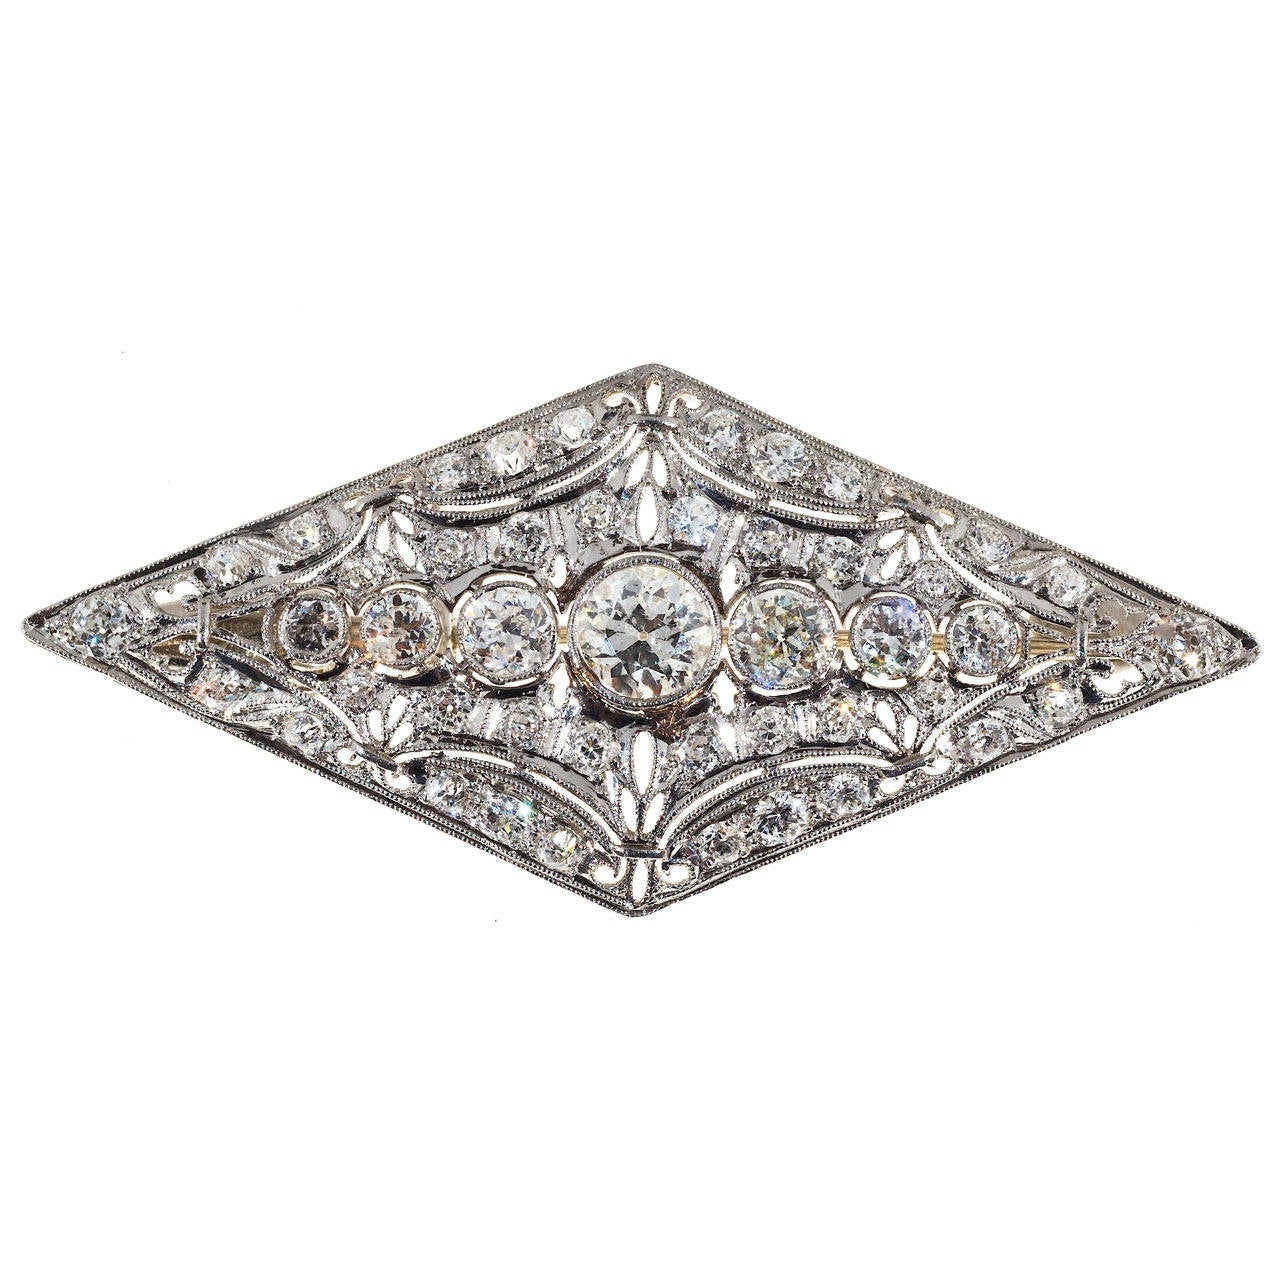 Art deco old european diamond platinum pin for sale at 1stdibs for European art deco